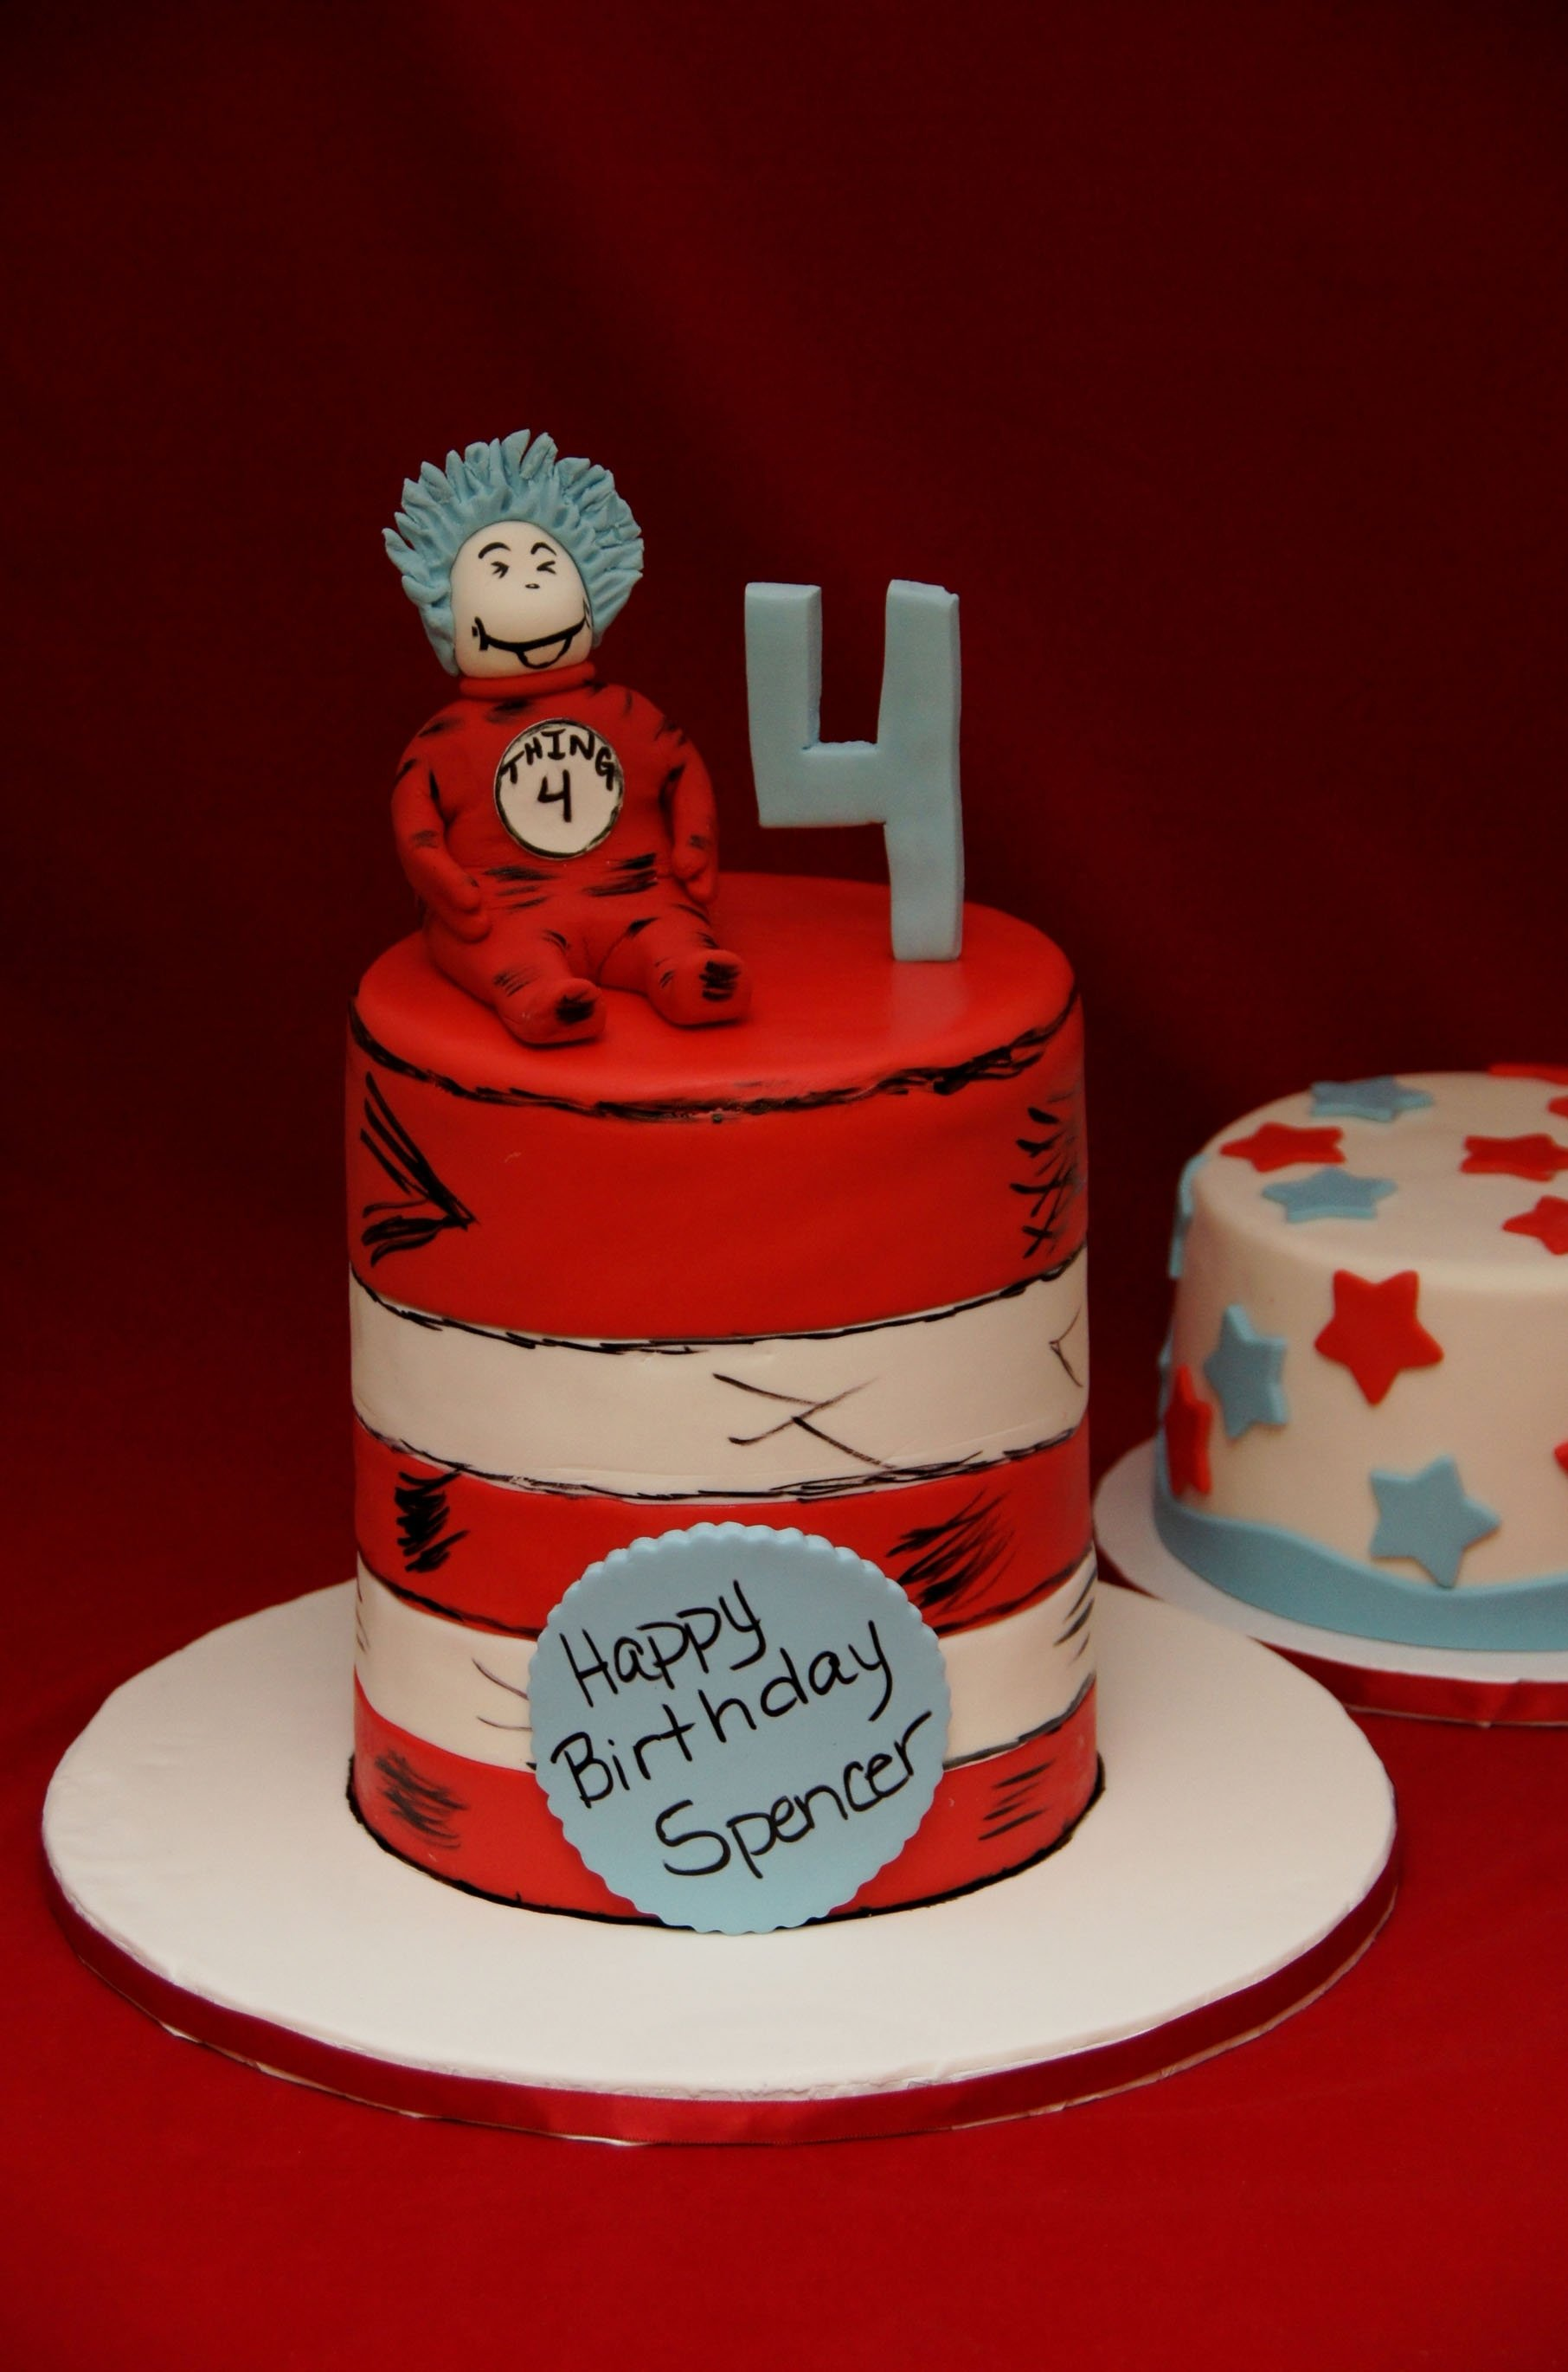 10 Attractive Cat In The Hat Cake Ideas gallery cake in cup ny 2020